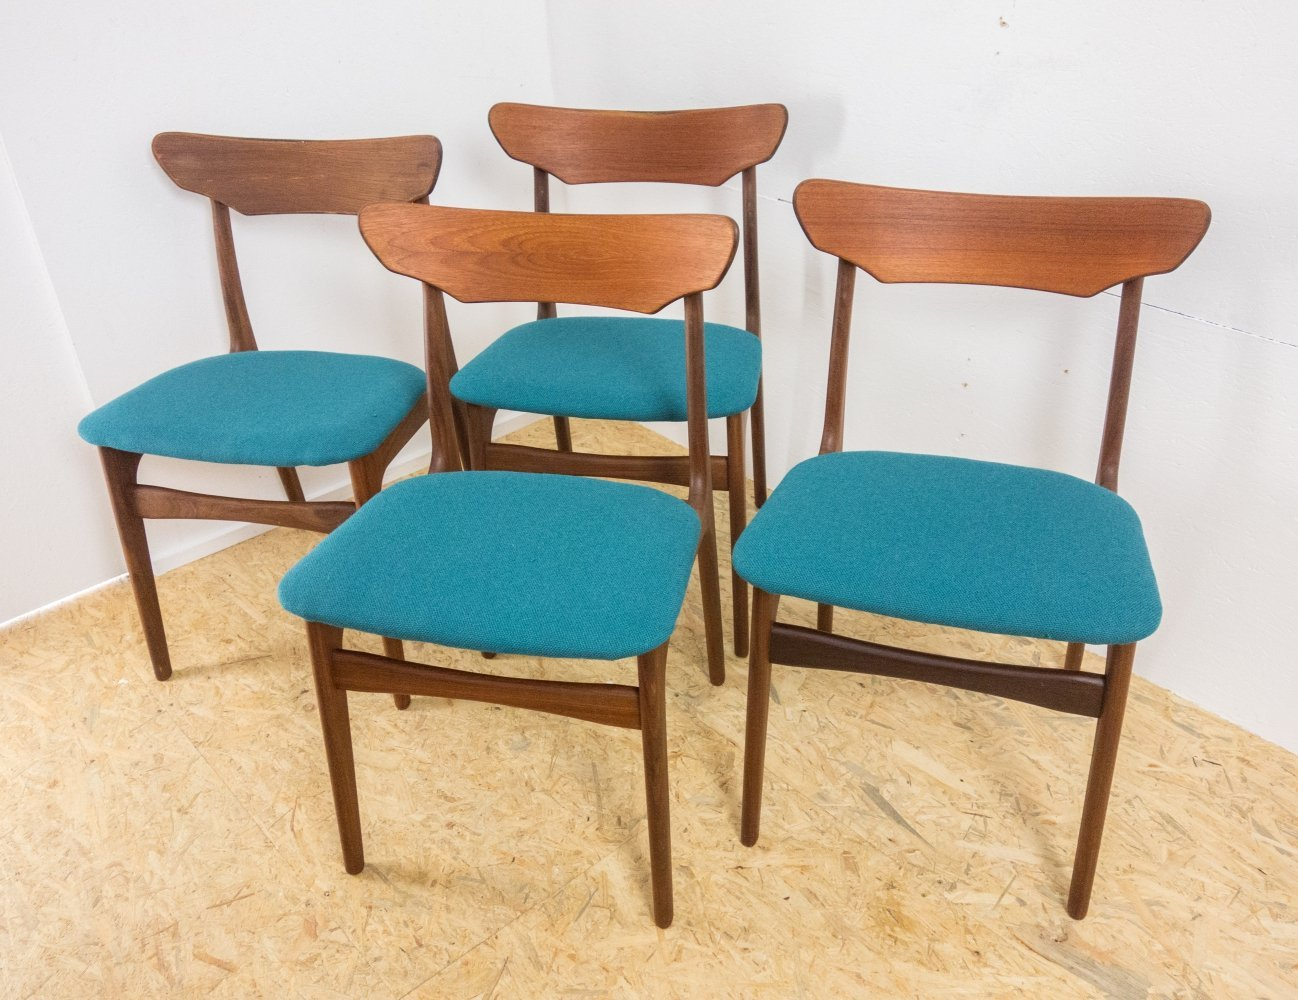 4 dining chairs by Schionning & Elgaard